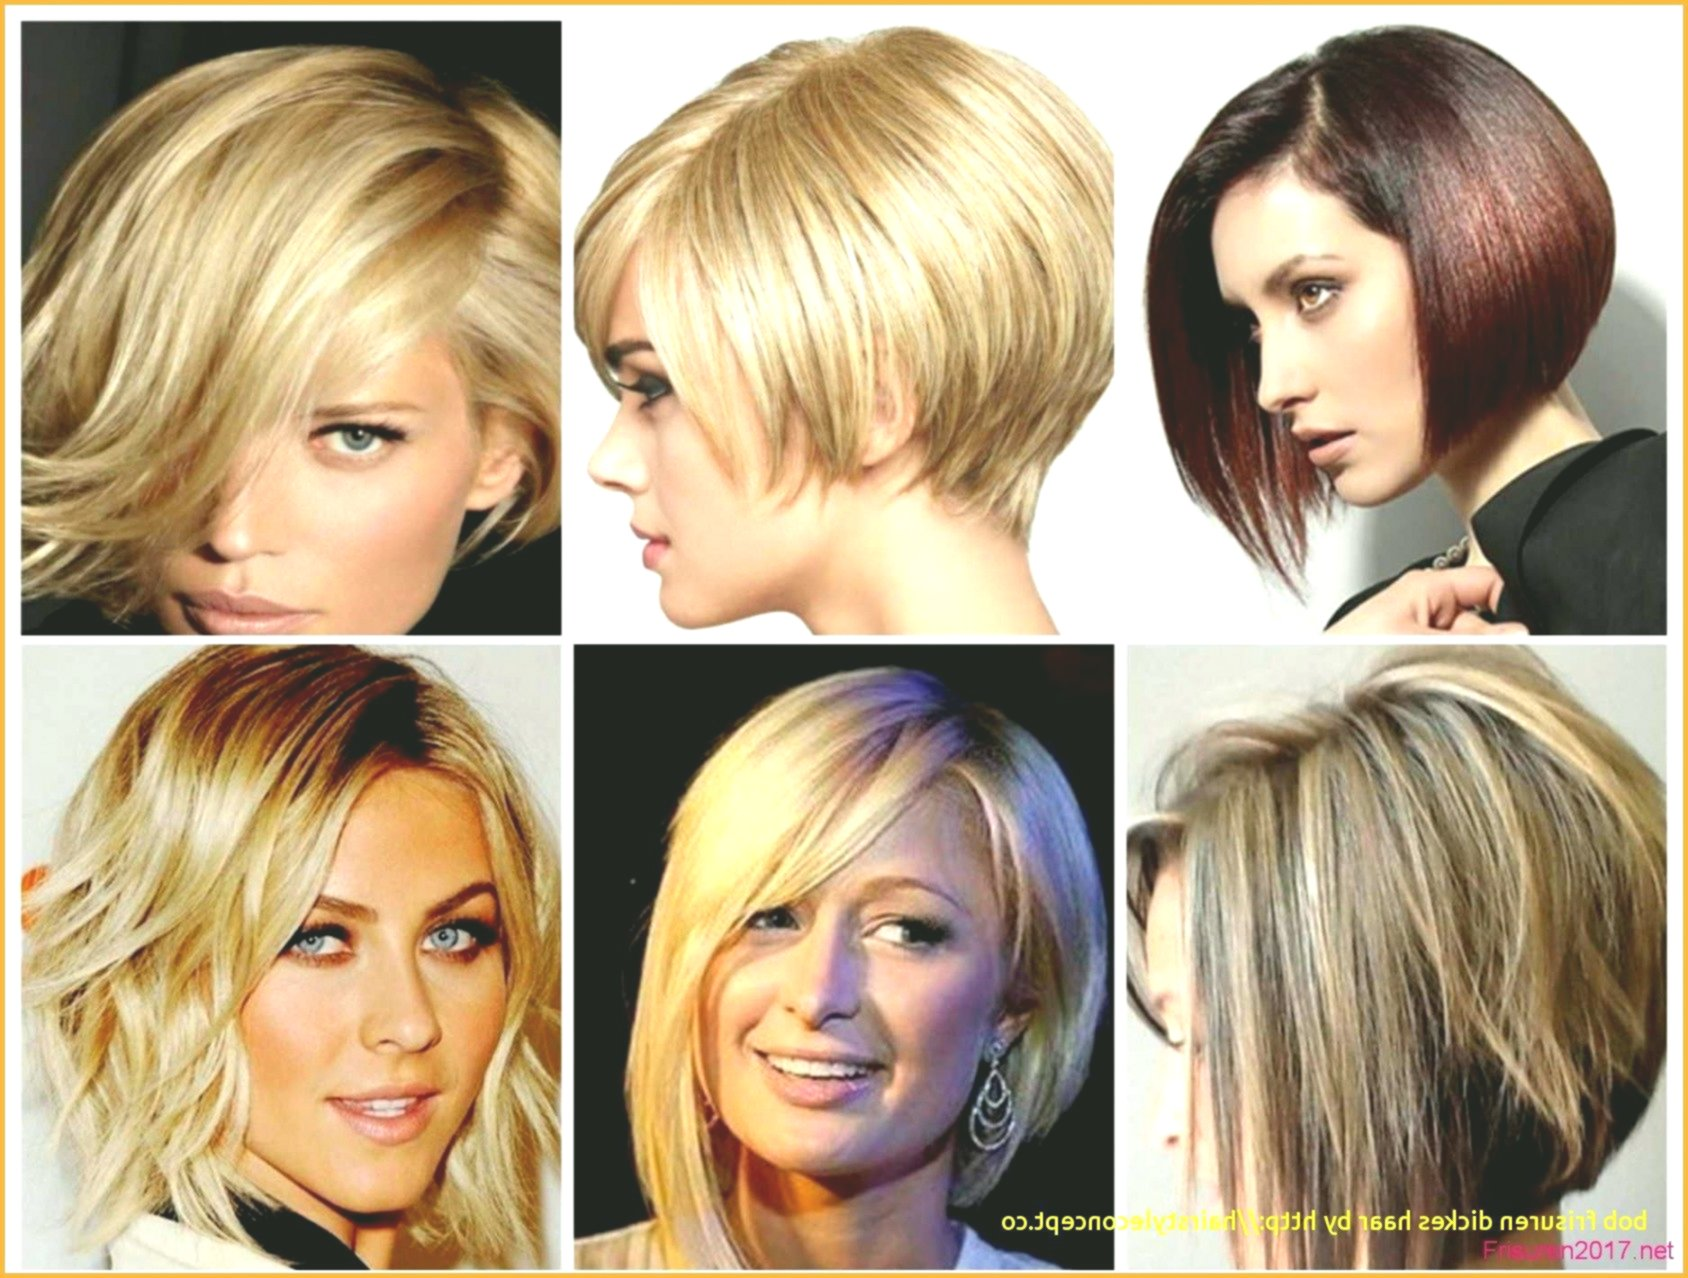 lovely hairstyles thick hair decoration-New hairstyles Thick hair portrait